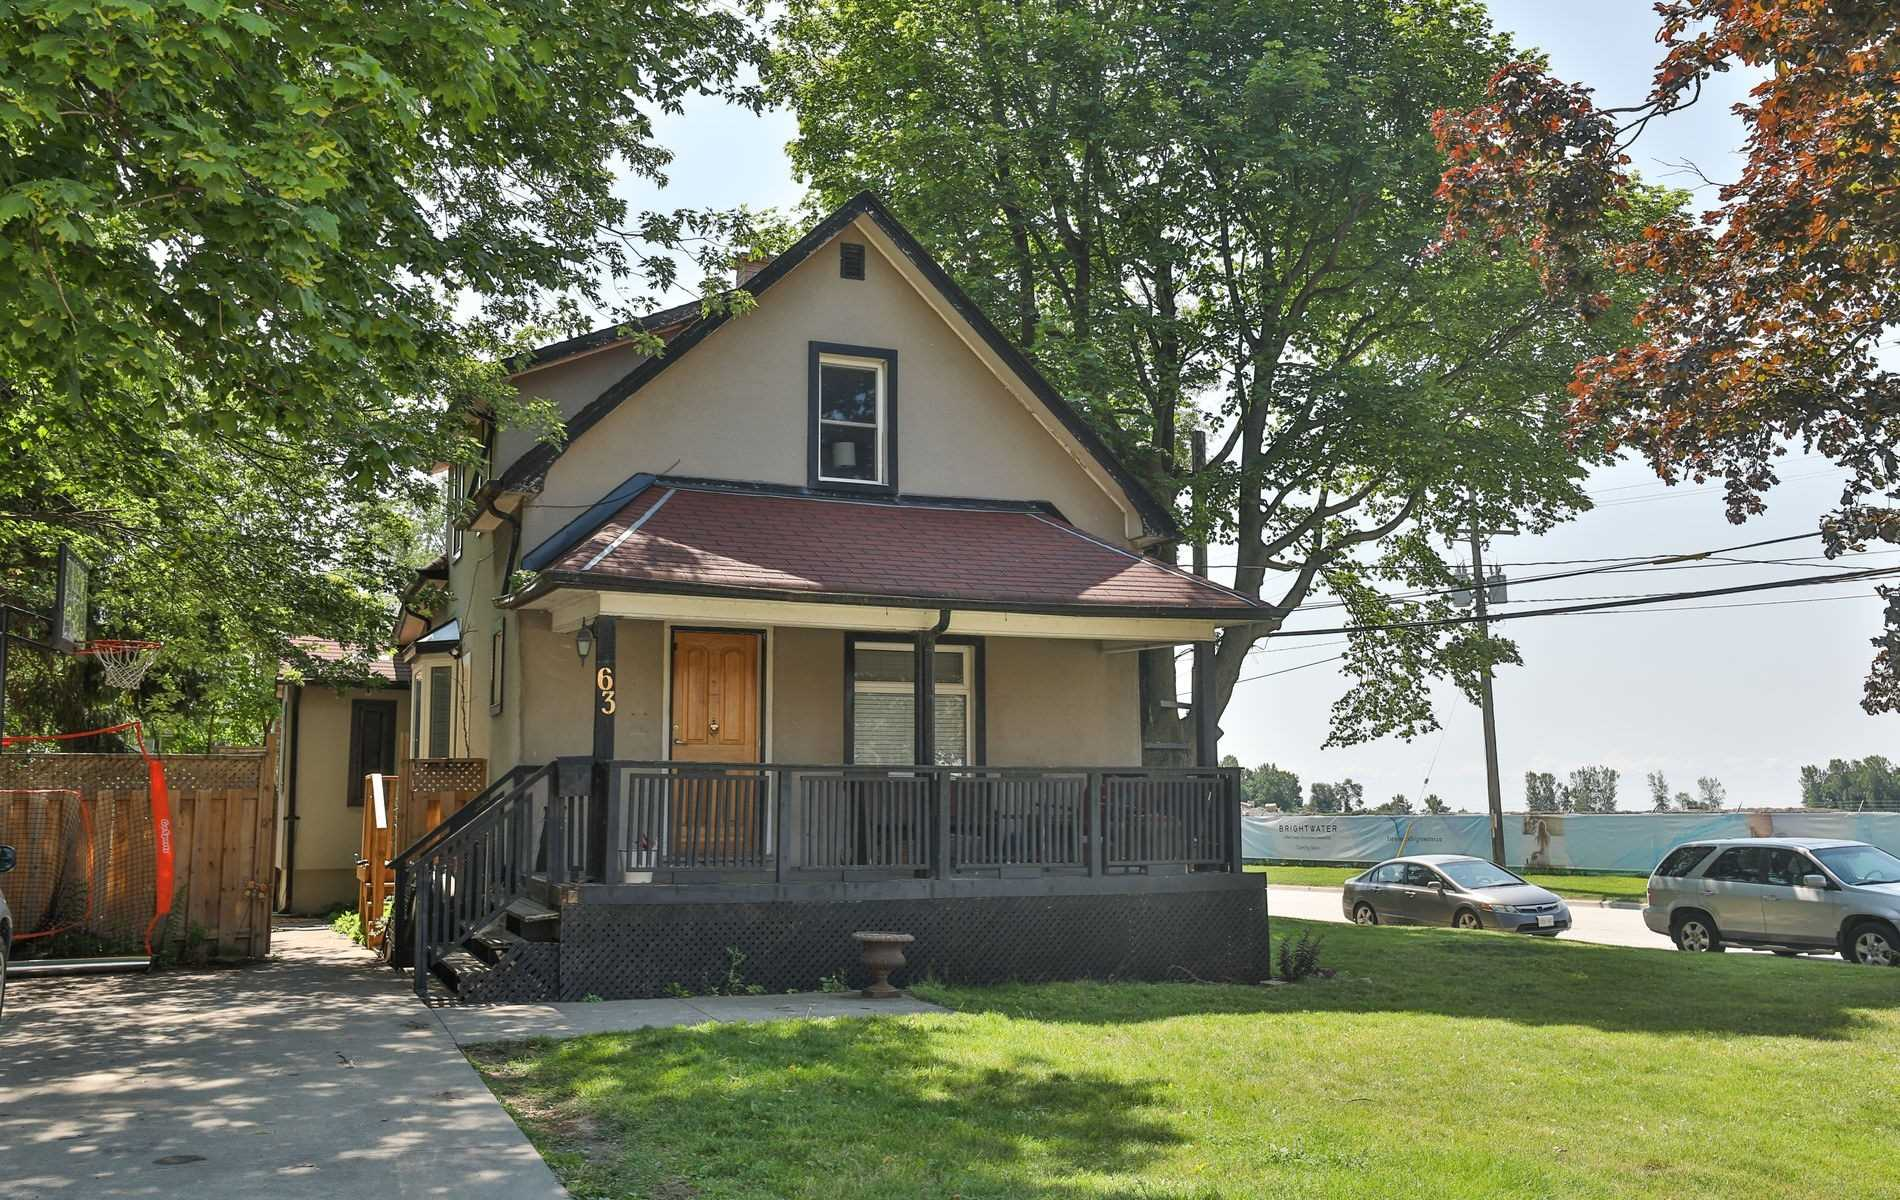 Detached house For Lease In Mississauga - 63 Port St, Mississauga, Ontario, Canada L5H1E2 , 3 Bedrooms Bedrooms, ,1 BathroomBathrooms,Detached,For Lease,Upper,Port